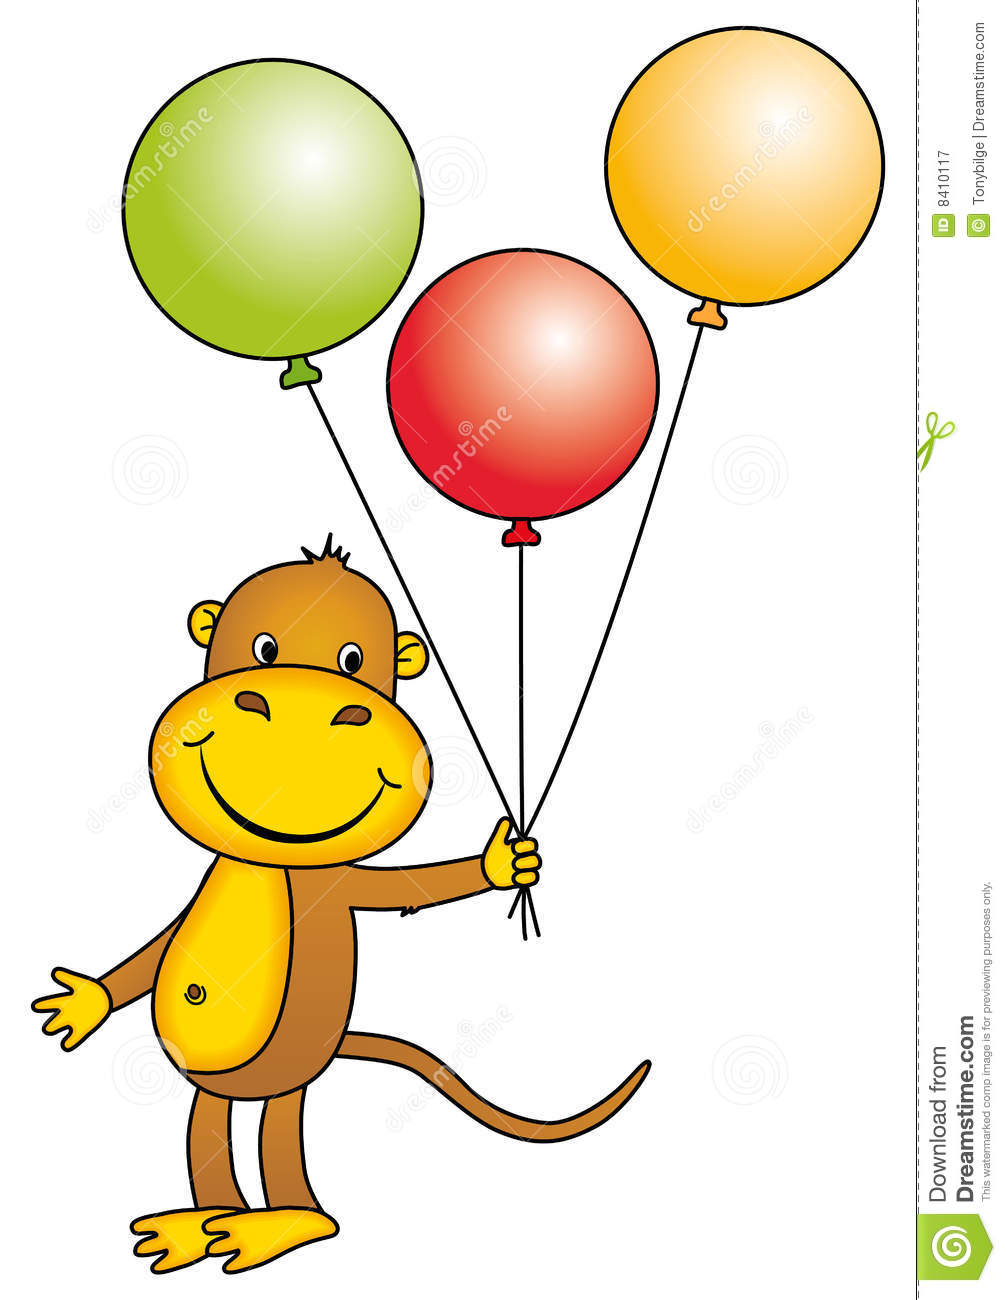 Monkey holding balloons stock illustration image of game 8410117